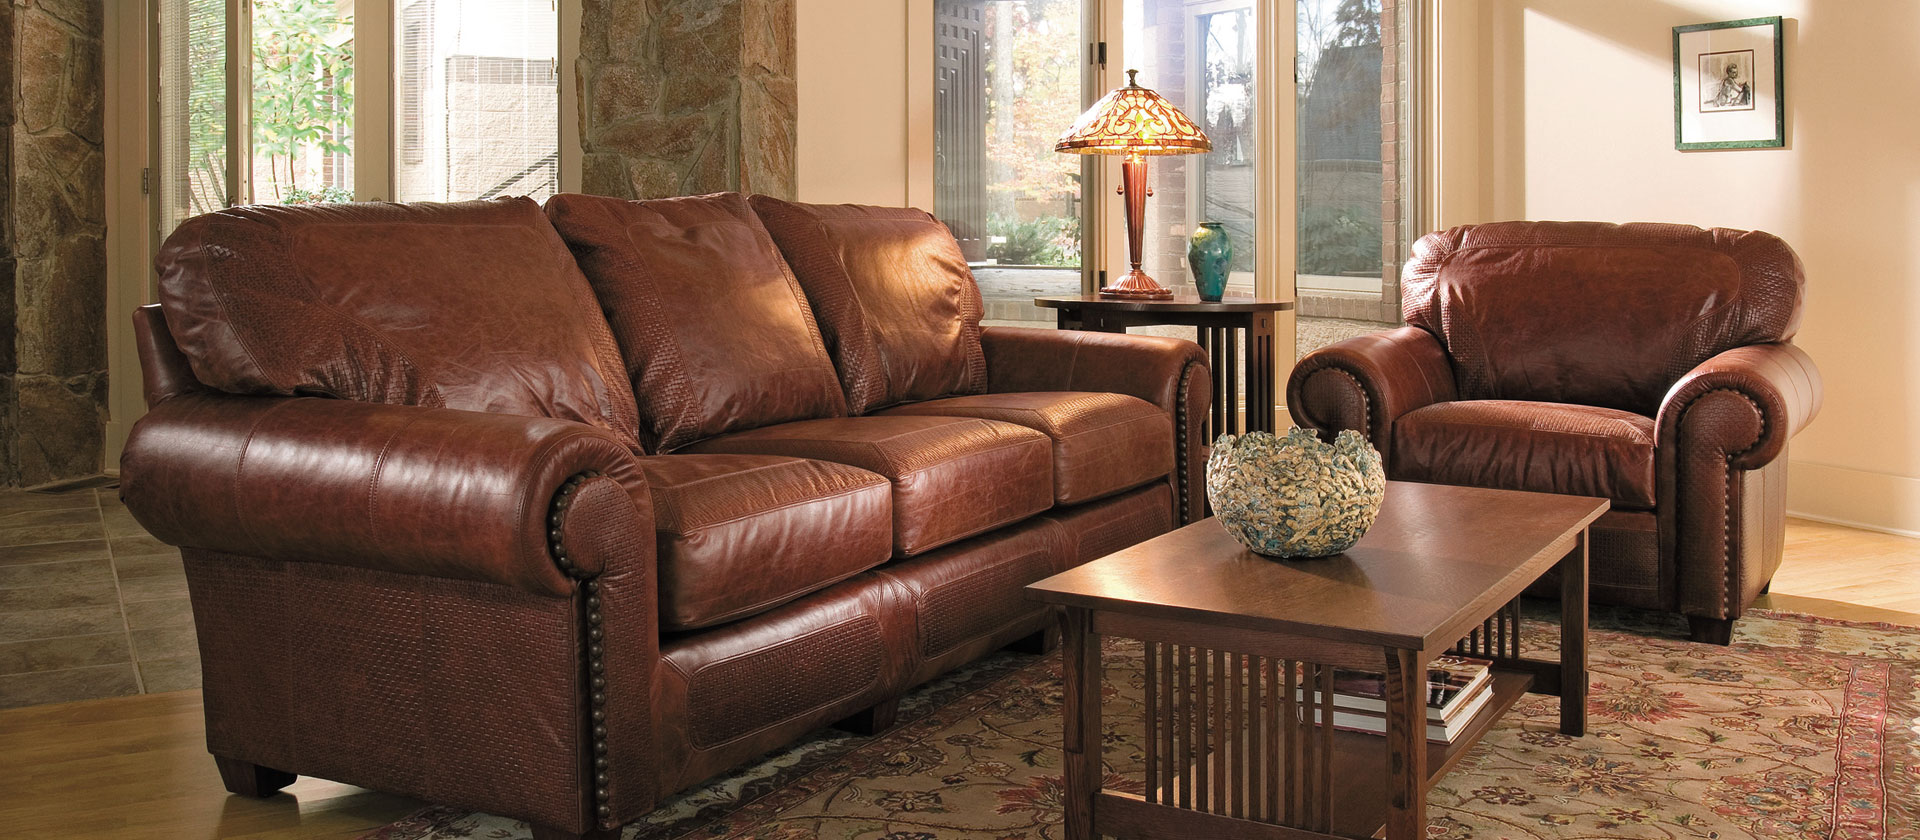 Willis Furniture, Virginia Beach, Willis Furniture Is The Leading And  Premier Furniture Store In Virginia Beach Featuring A Large Selection Of  Home ...